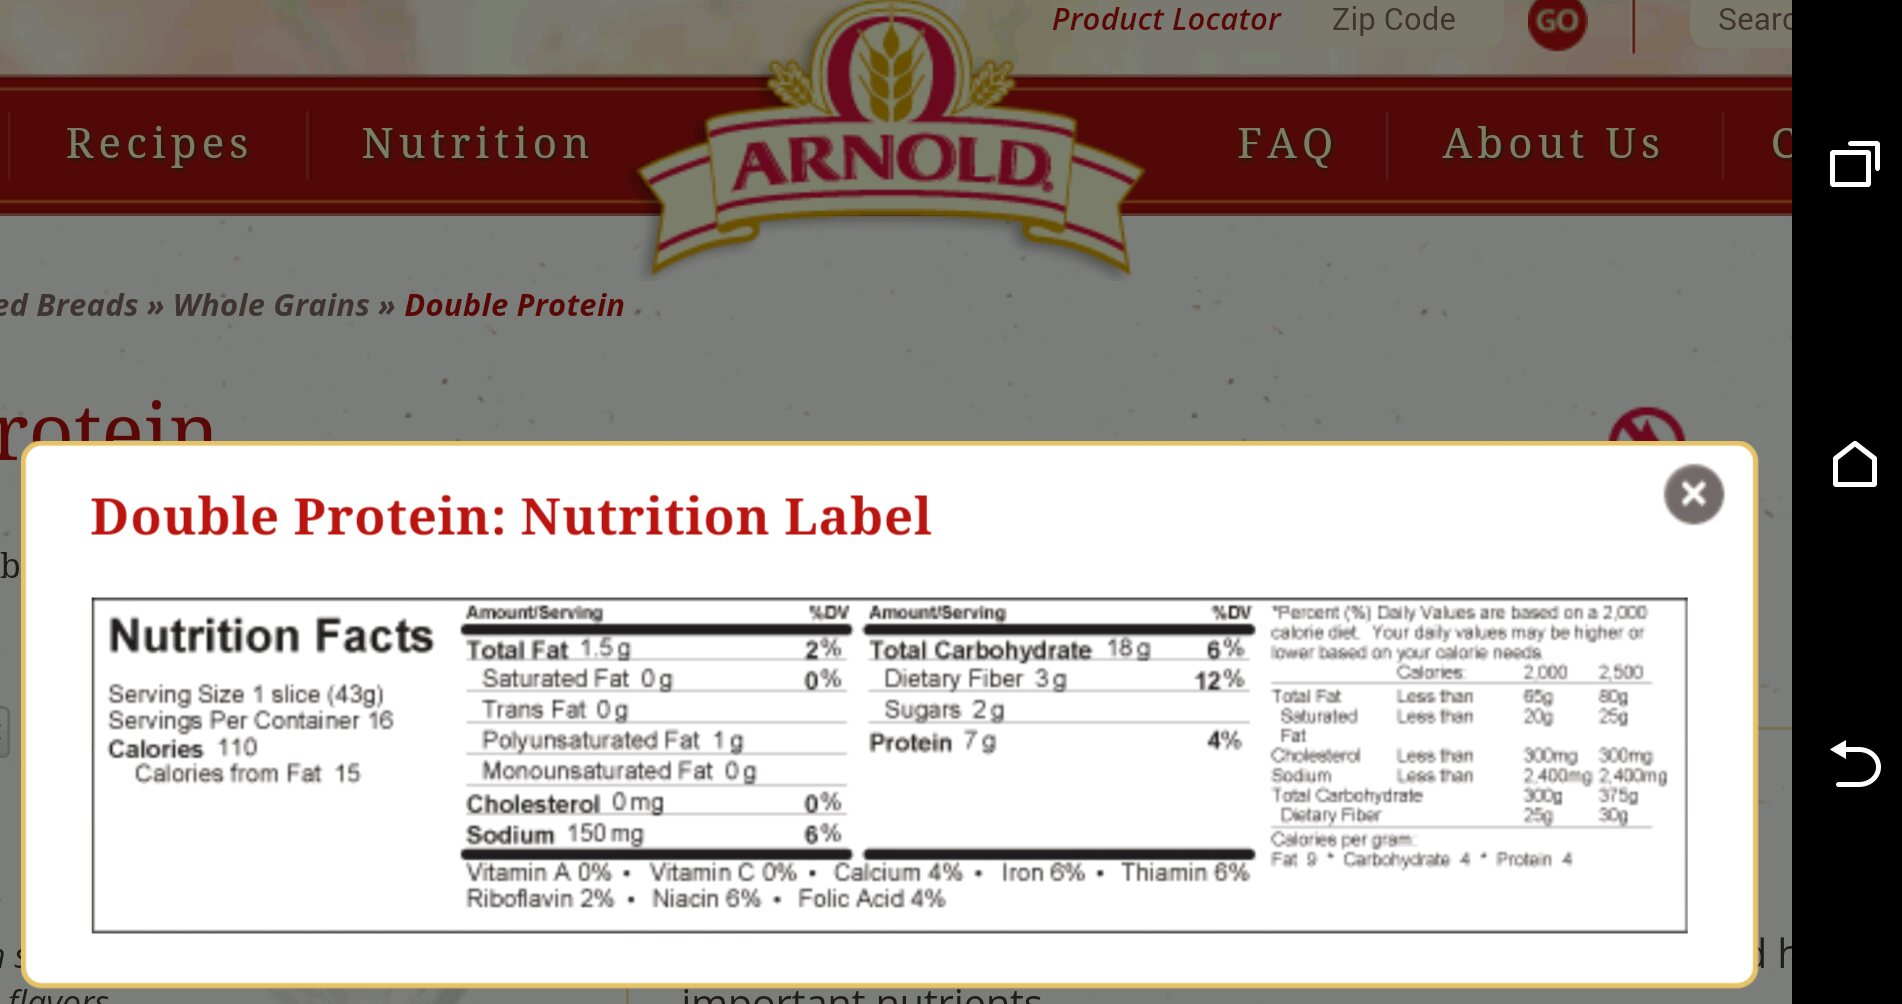 image. Here's my recipe for French toast: Ingredients: *2 slices Arnold Double Protein Bread,